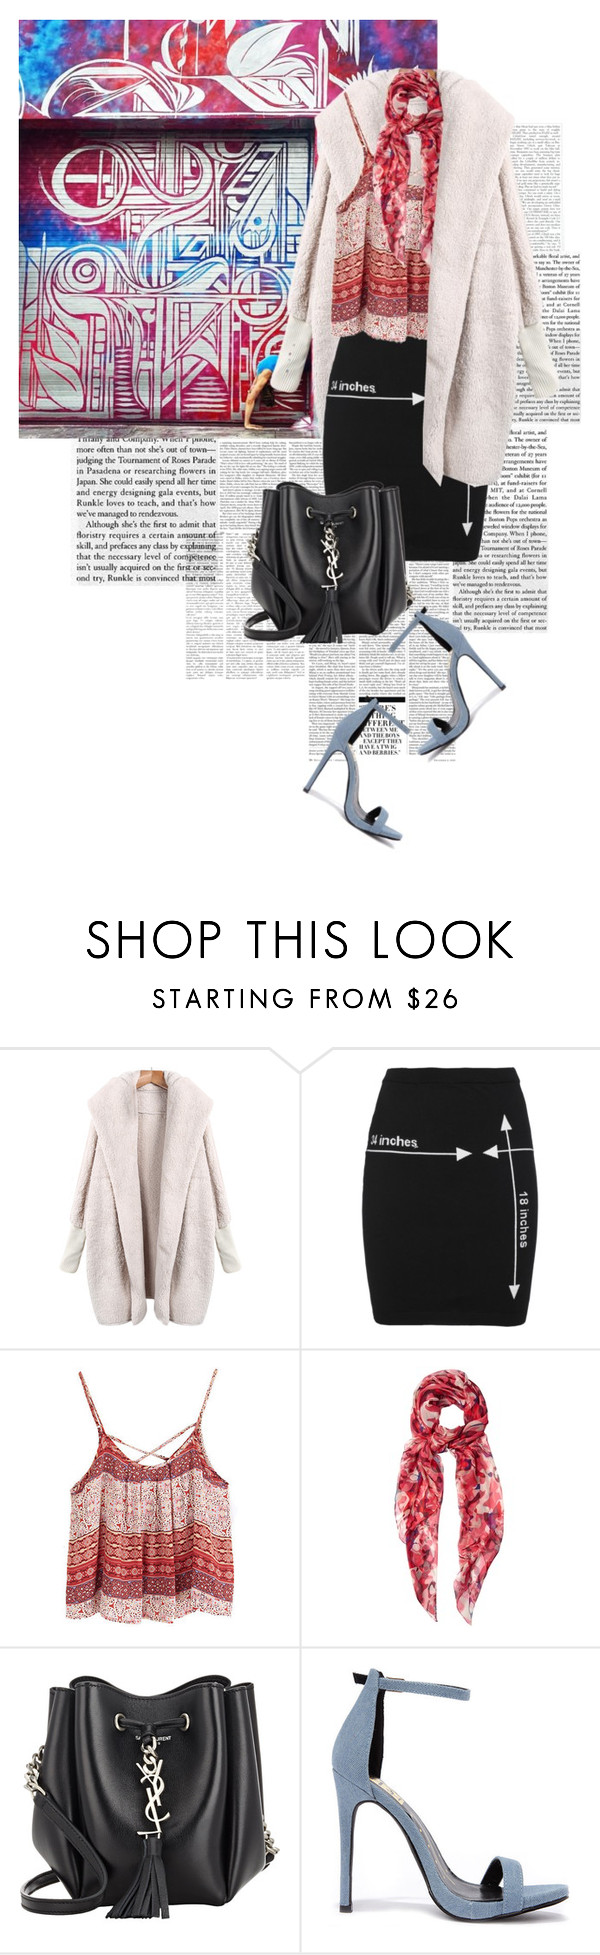 """""""Soren Buchanan Marries Yoga Poses With Chicago's Street Art"""" by marierabier ❤ liked on Polyvore featuring Nicki Minaj, Moschino, Alexander McQueen, Yves Saint Laurent and Fahrenheit"""